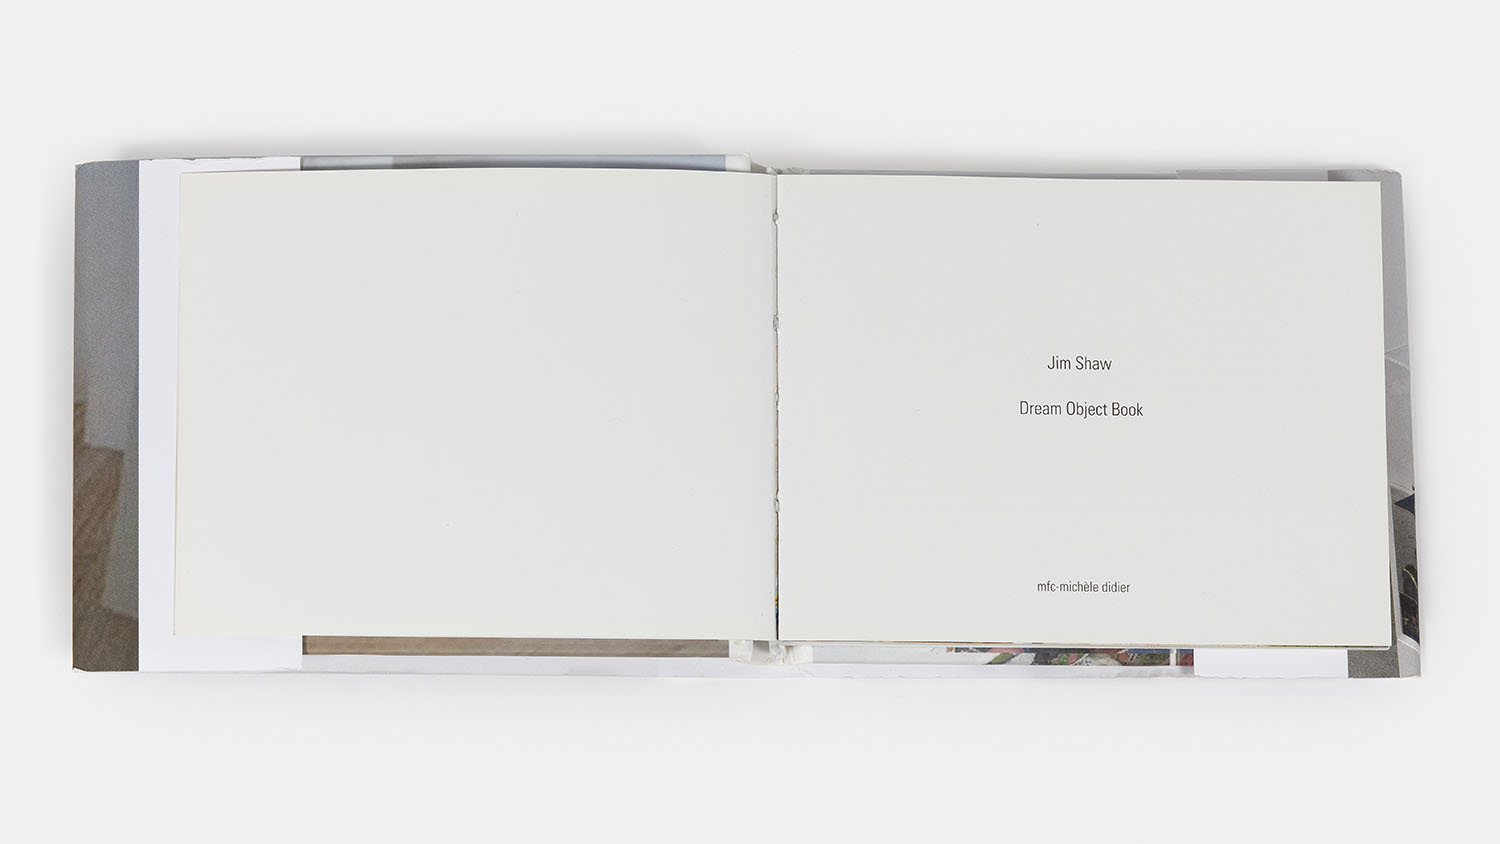 Jim Shaw - Dream Object Book, 2011 -